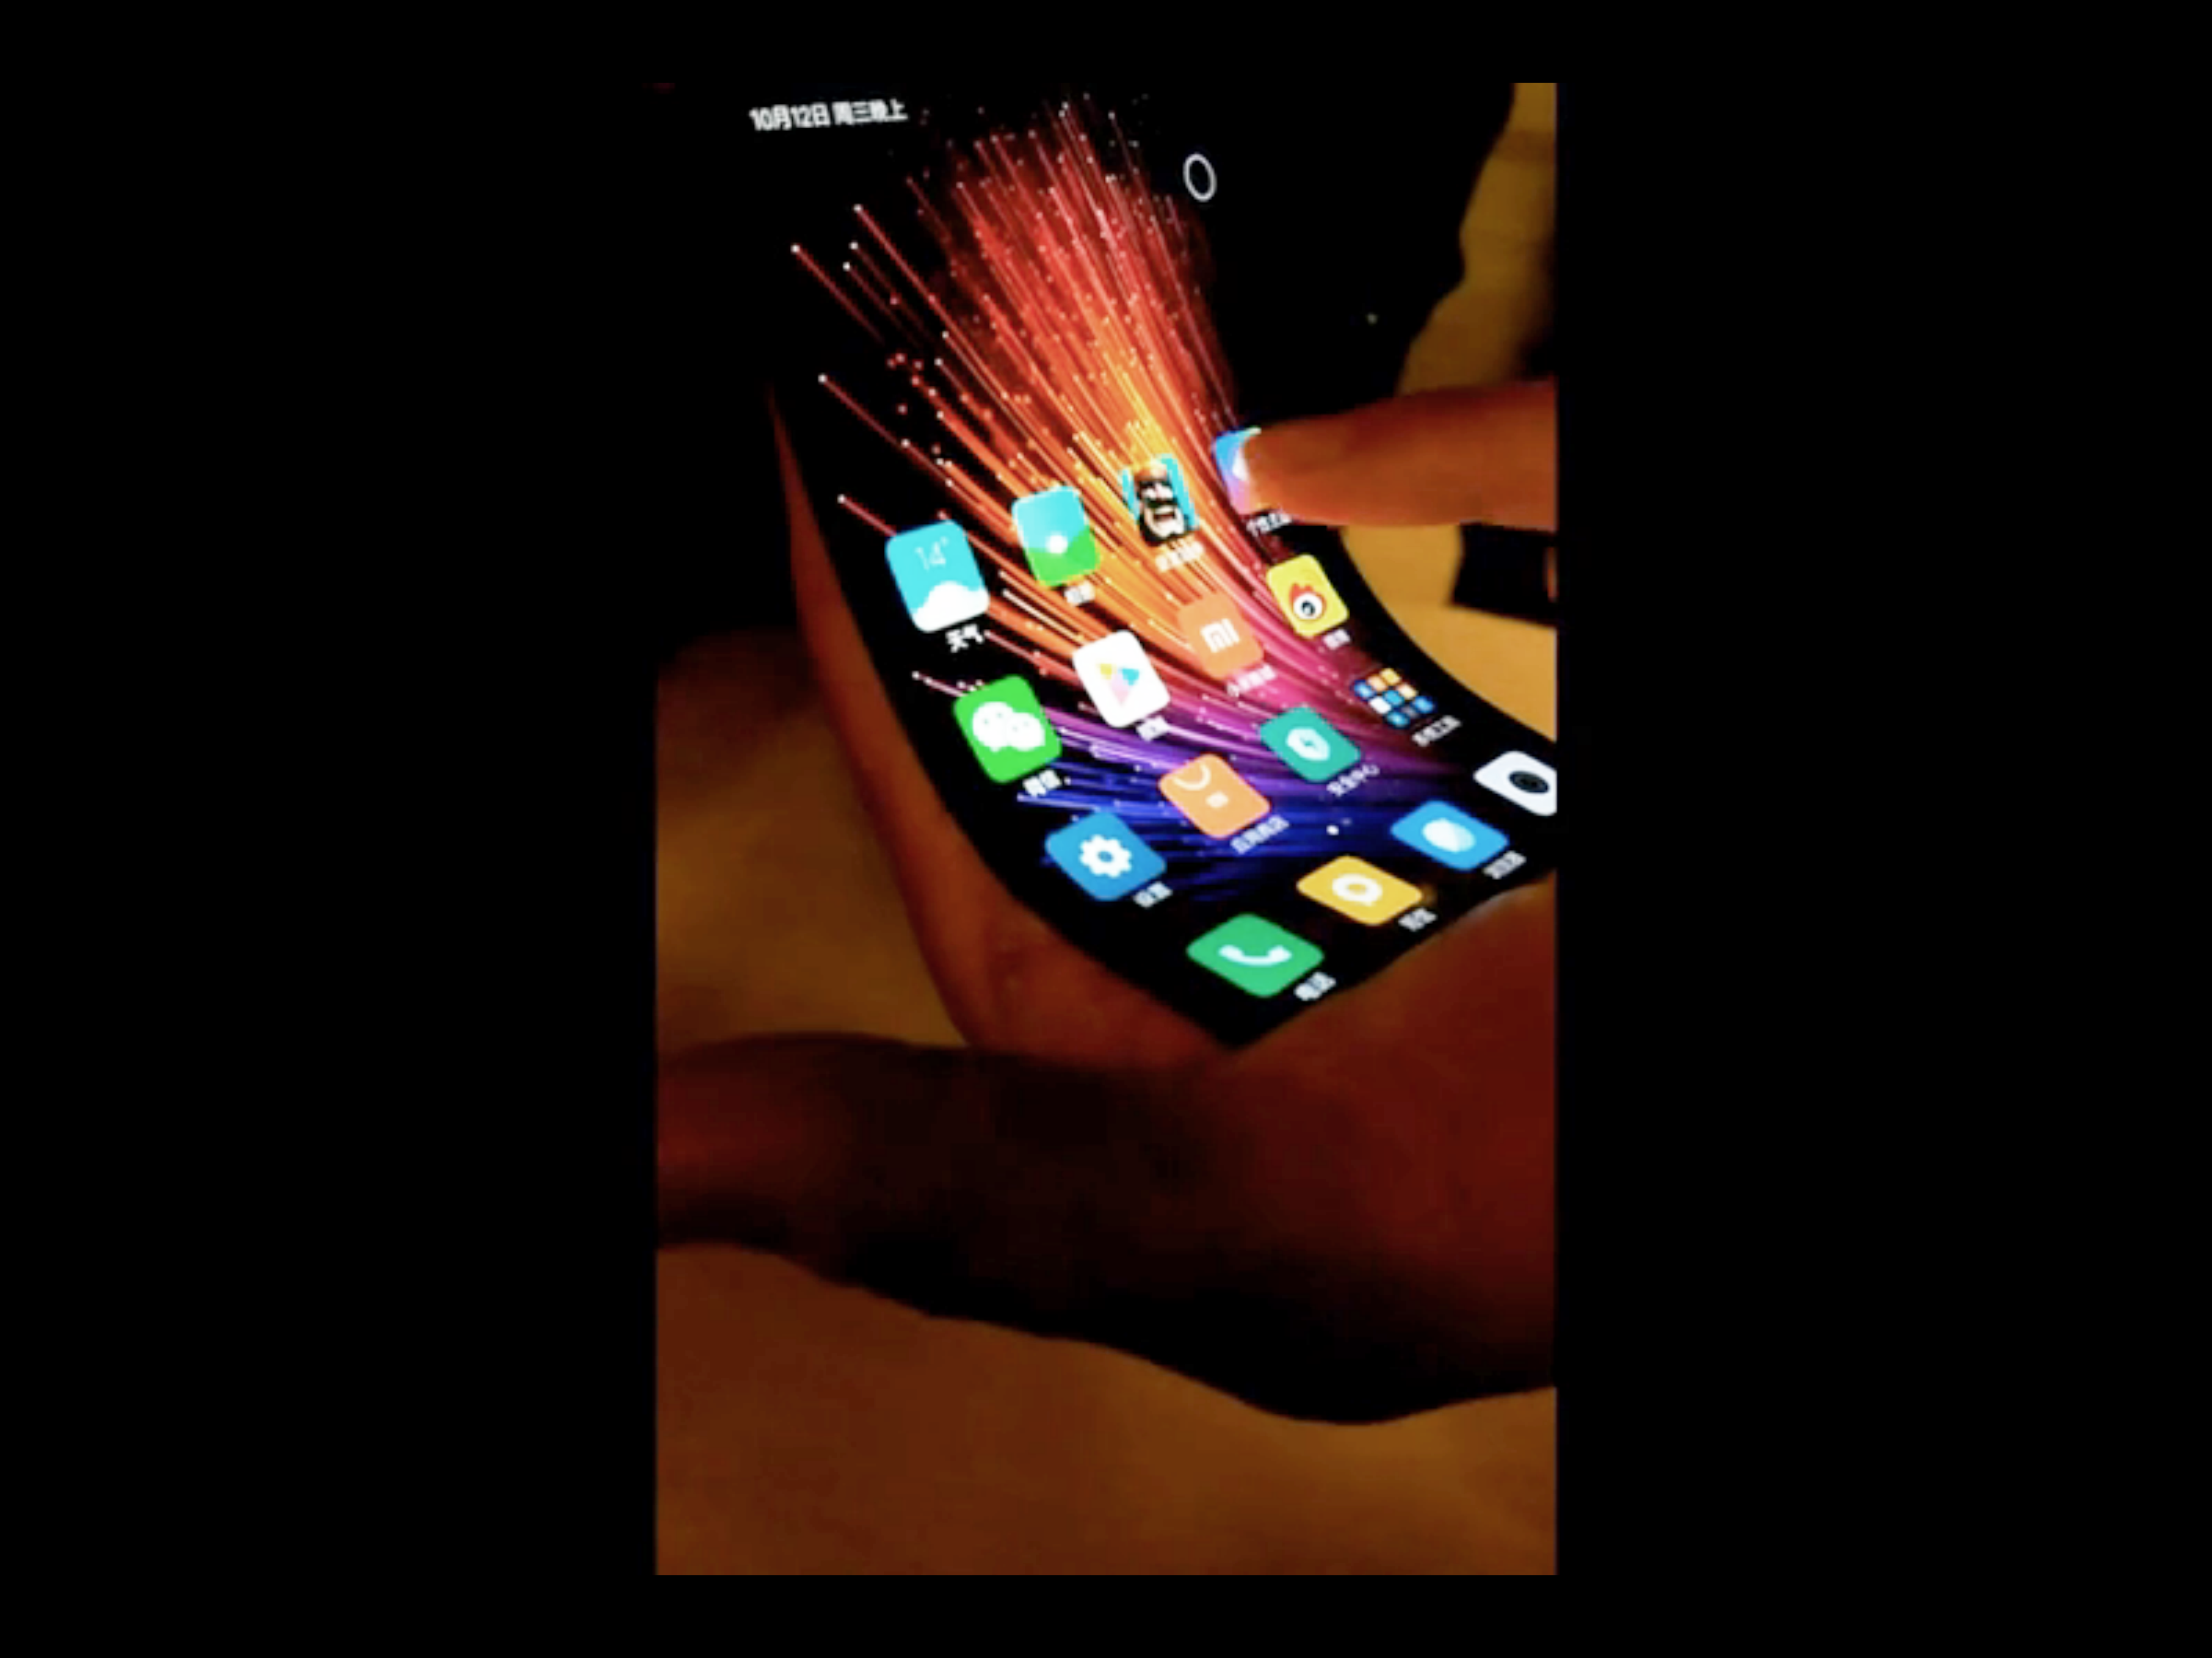 Leaked Video Shows Unreleased, Flexible Smartphone